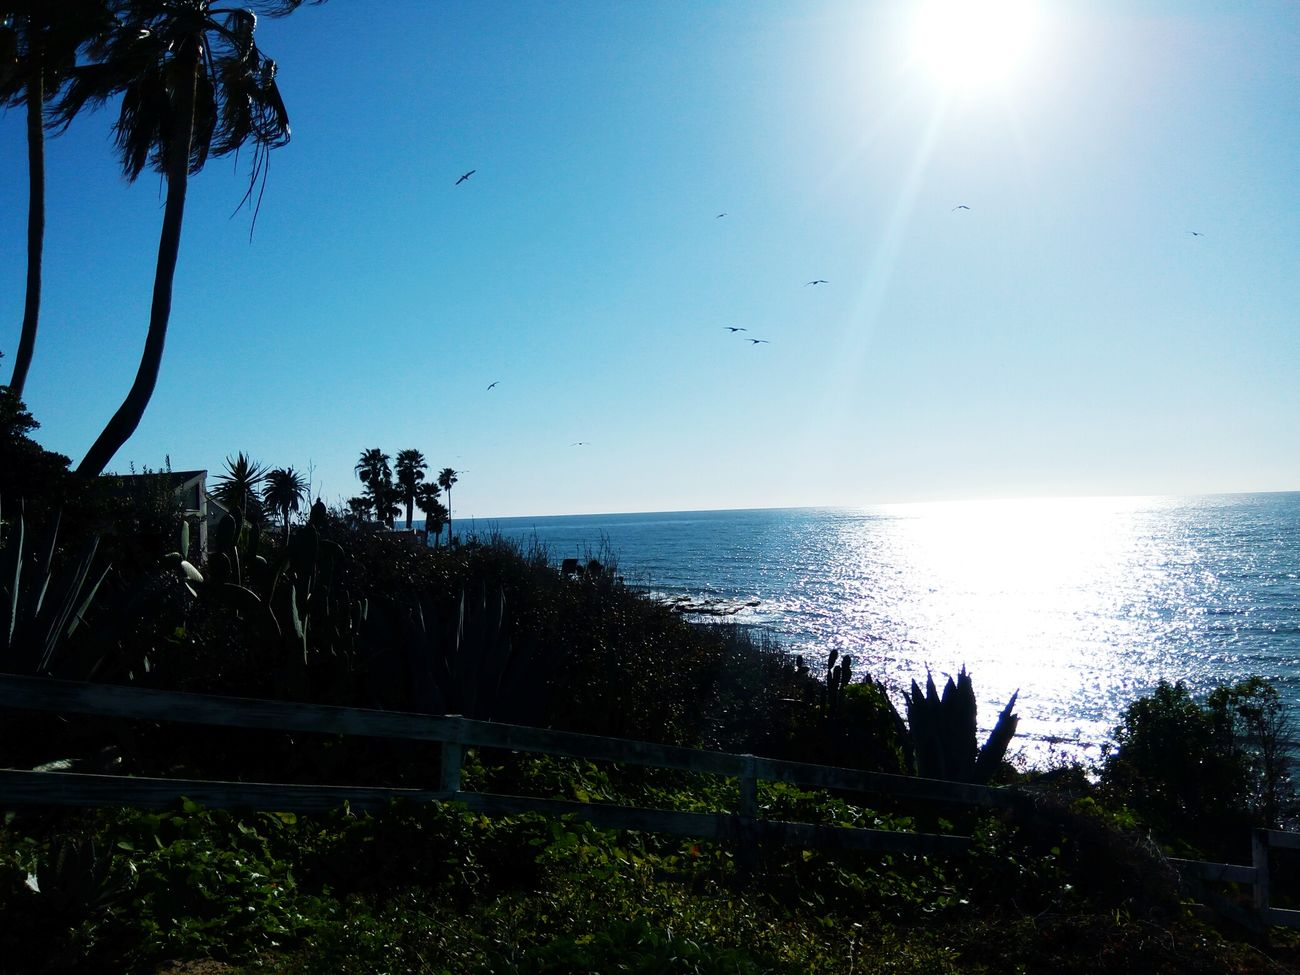 Tree Sunlight Water Sky Nature Growth Scenics Clear Sky No People Beauty In Nature Outdoors Sea Tranquil Scene Sunbeam Day Pixelgirl TRENDING  Ocean, Water, Beach, Birdrock Getty Images TRENDING  Cactus Palm Tree